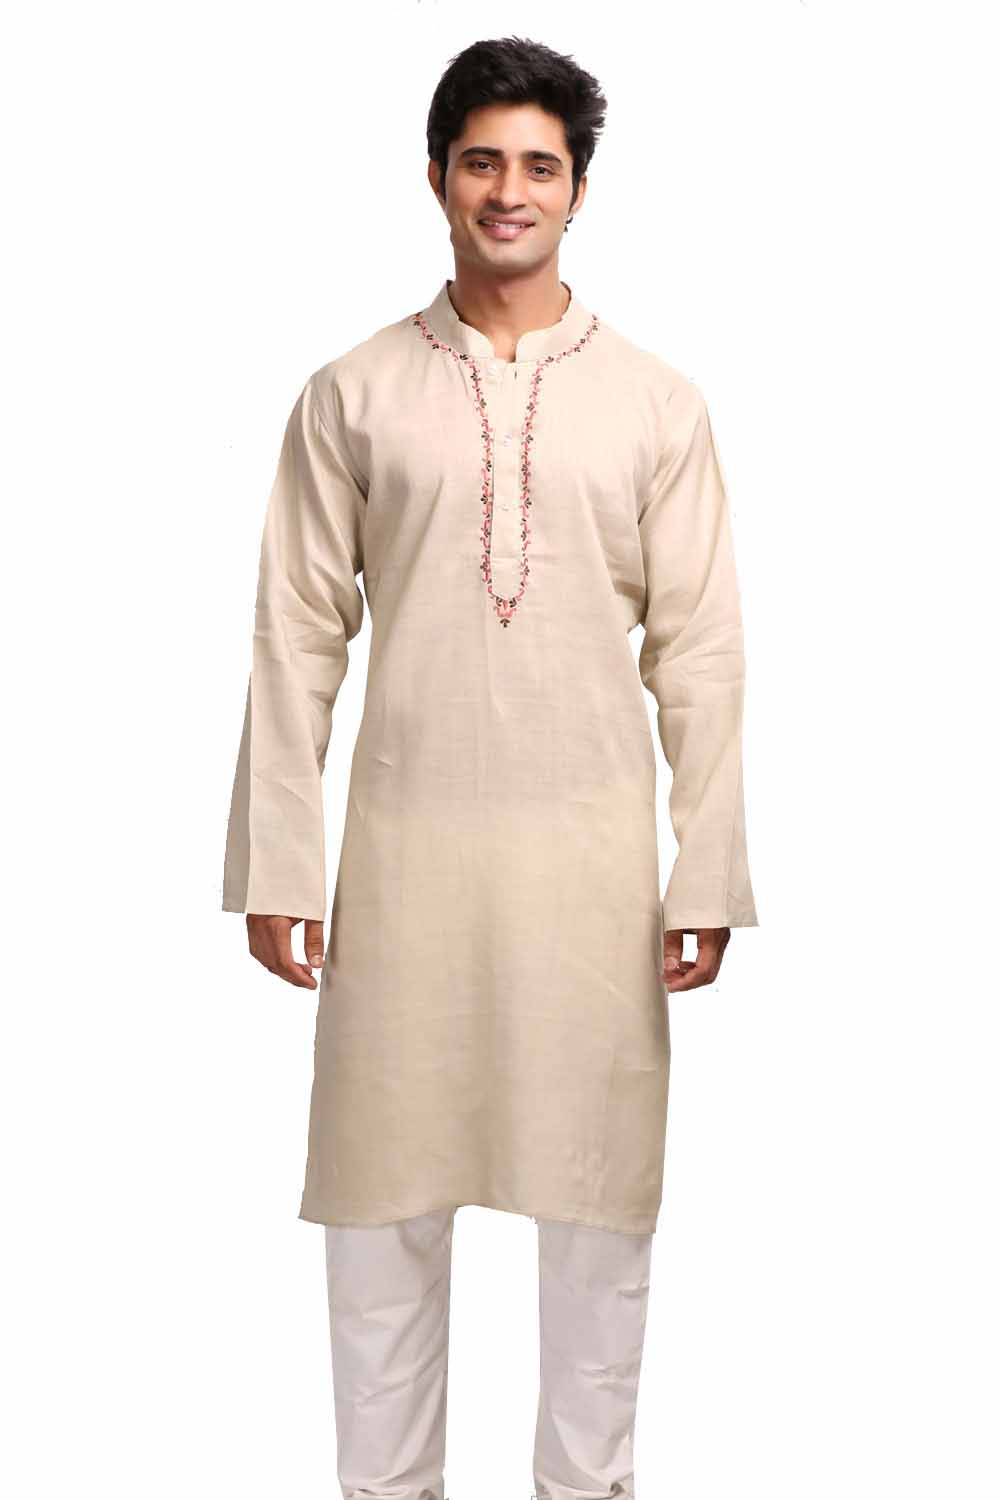 Earthen Beige Long Sleeves Linen Kurta with Resham Embroidery